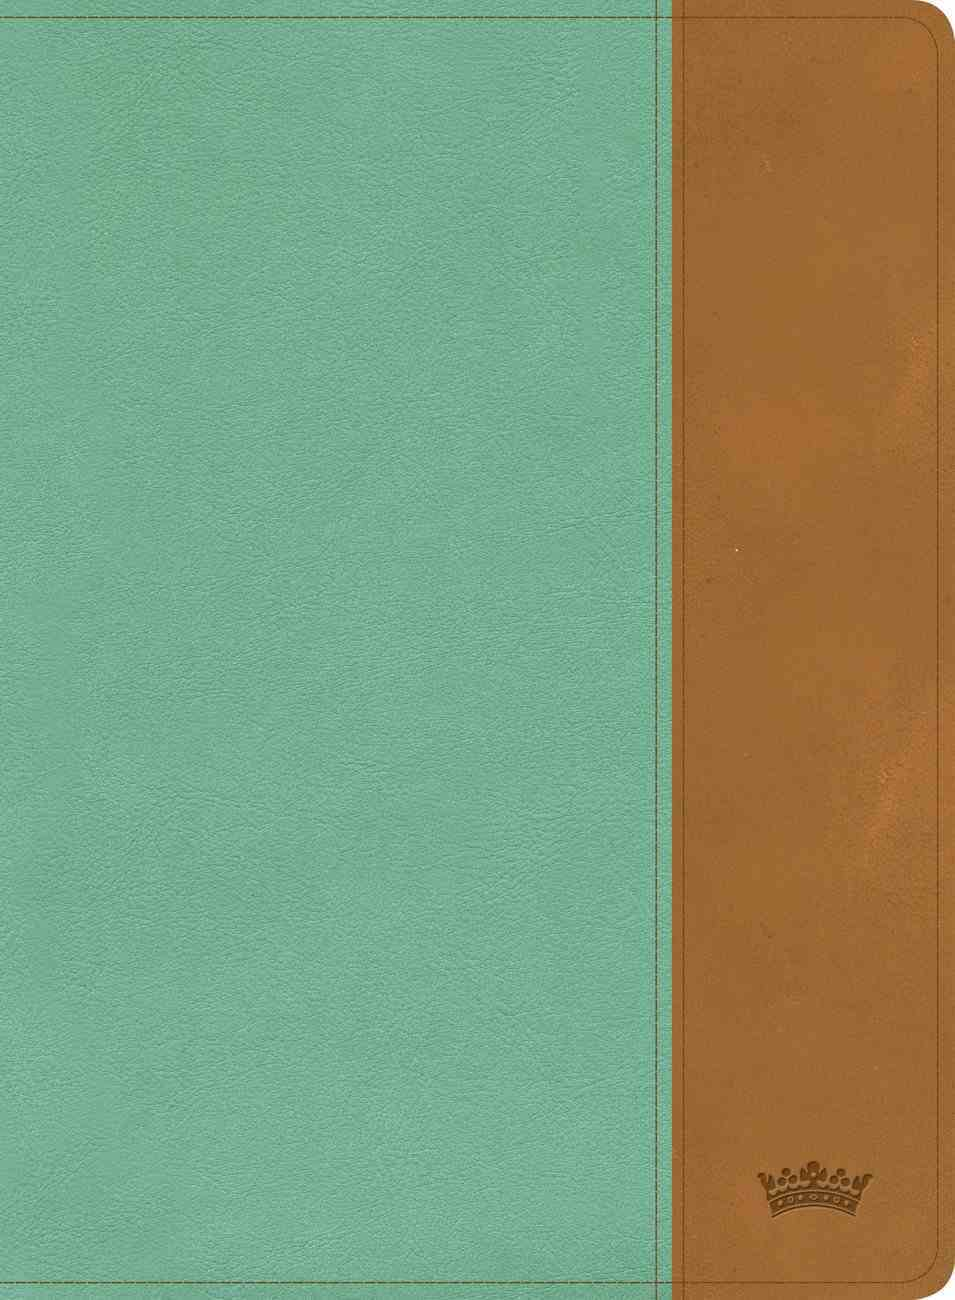 CSB Tony Evans Study Bible Teal/Earth Indexed Imitation Leather